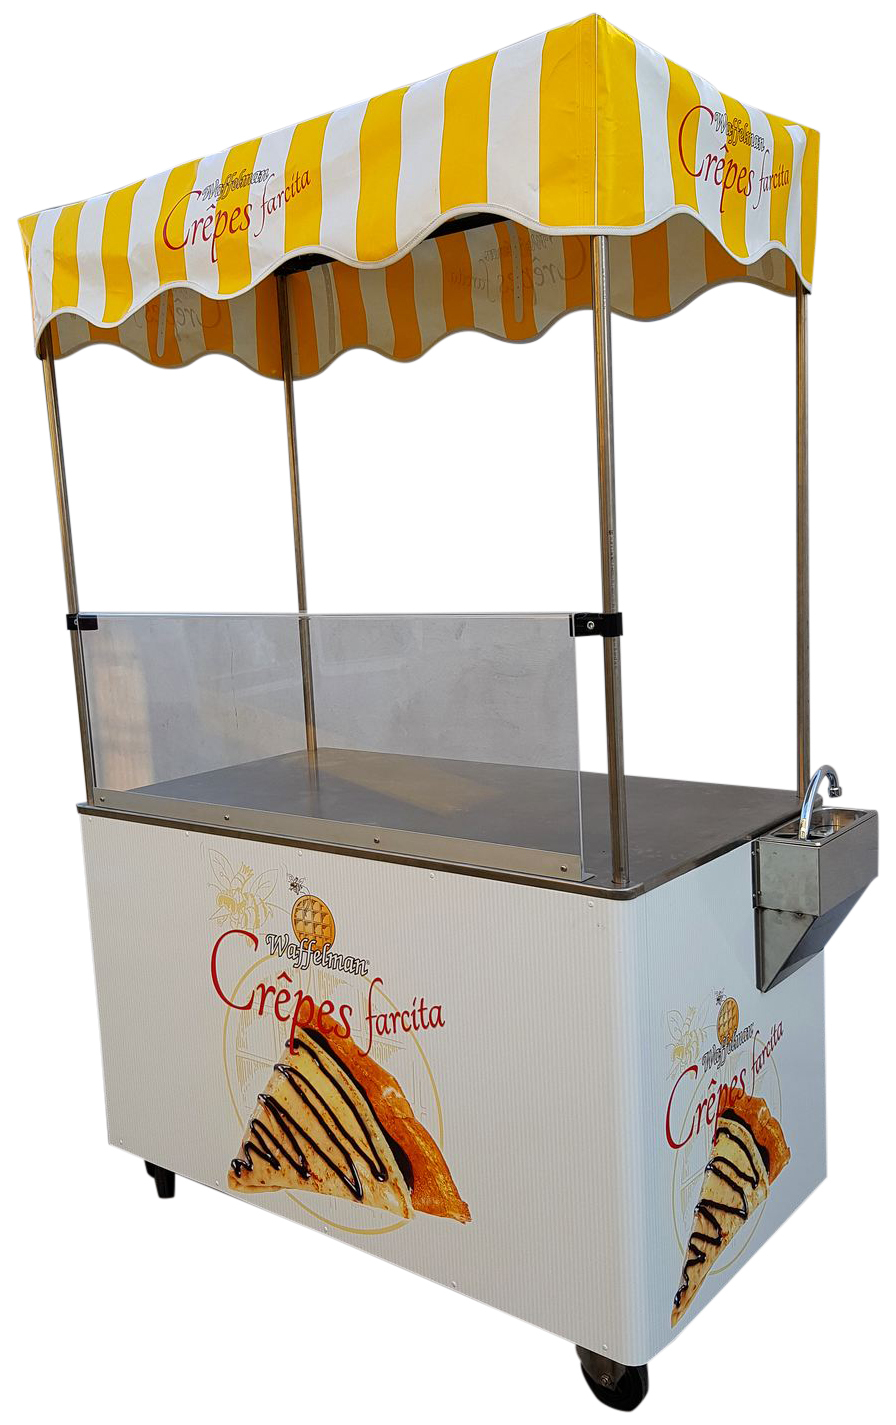 CARRELLO_A_SPINTA_PUSH_CART_per_CREPES_e_WAFFEL_08